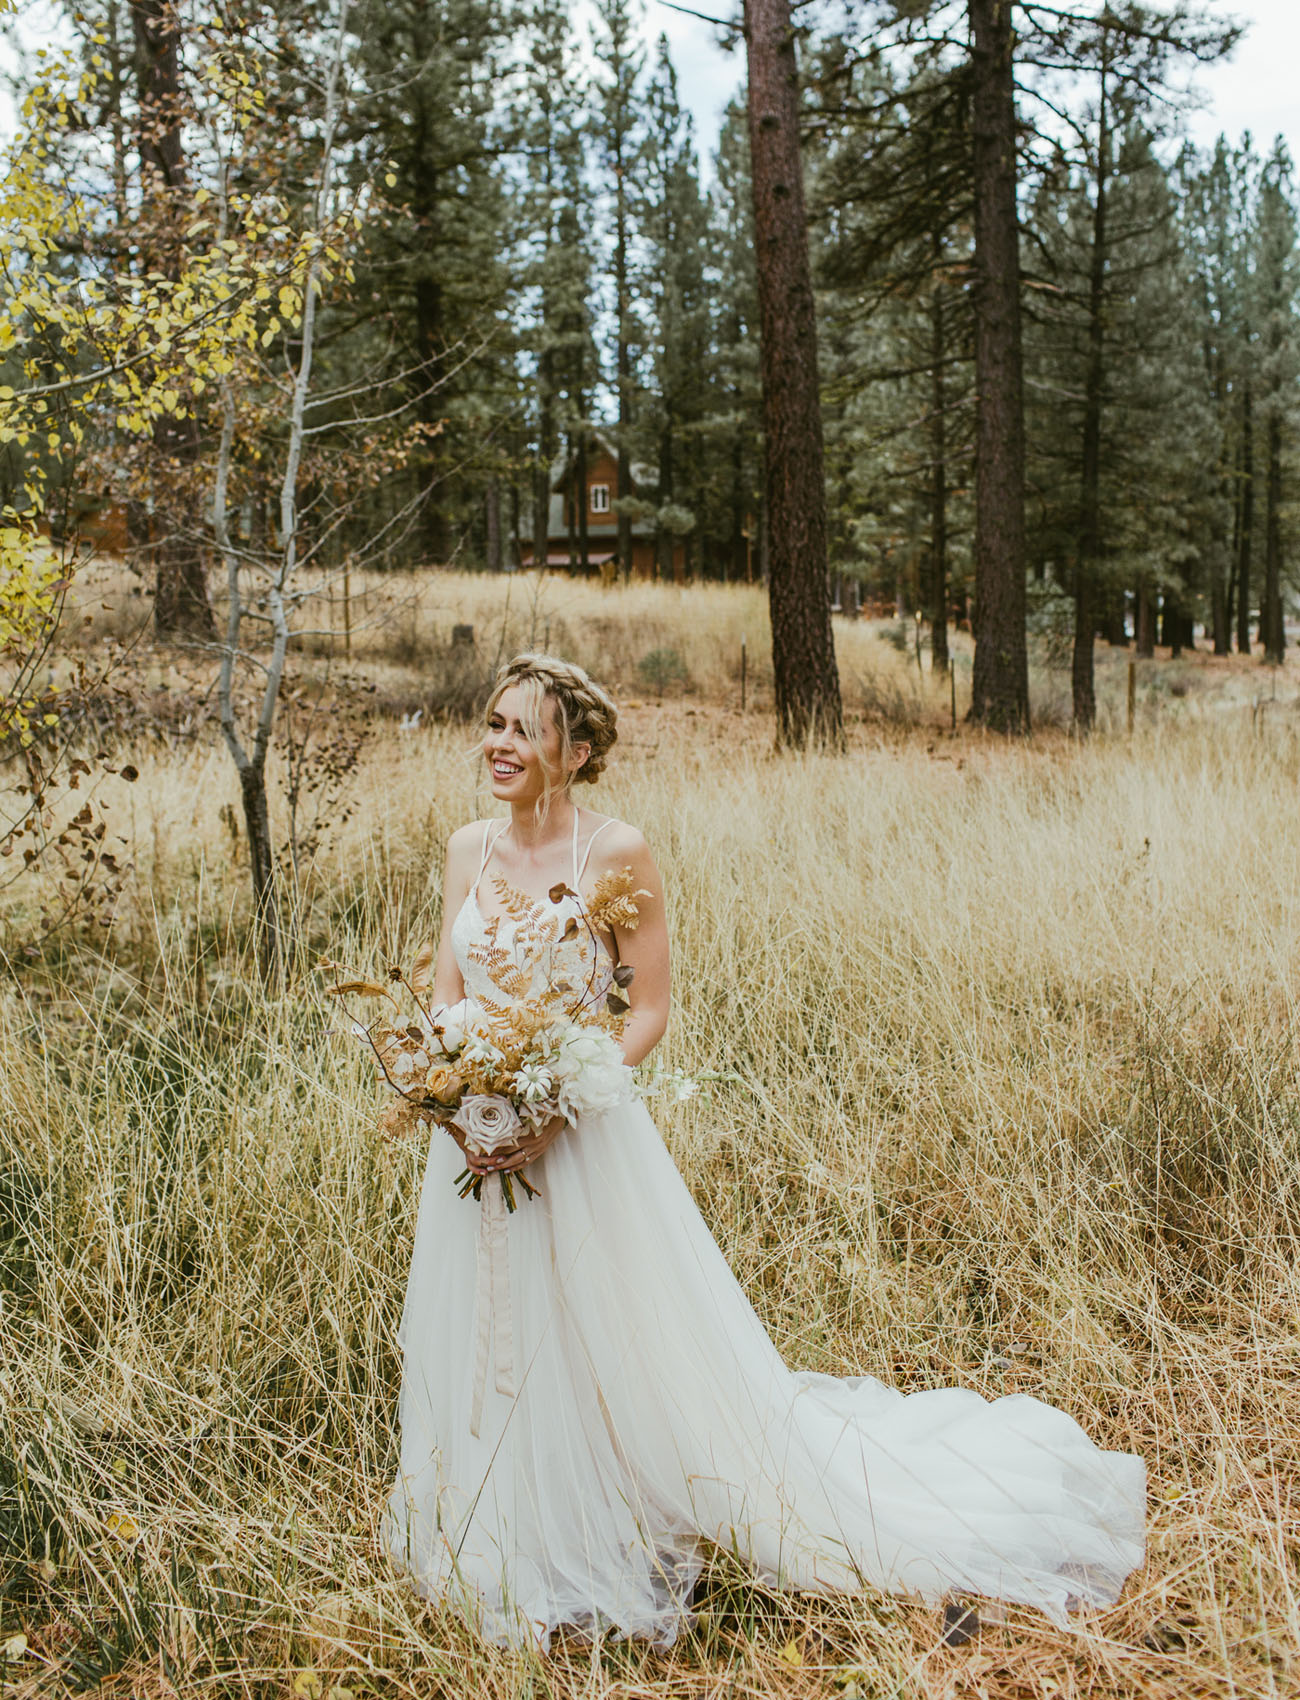 Modern + Edgy Forest Wedding in Northern California ...